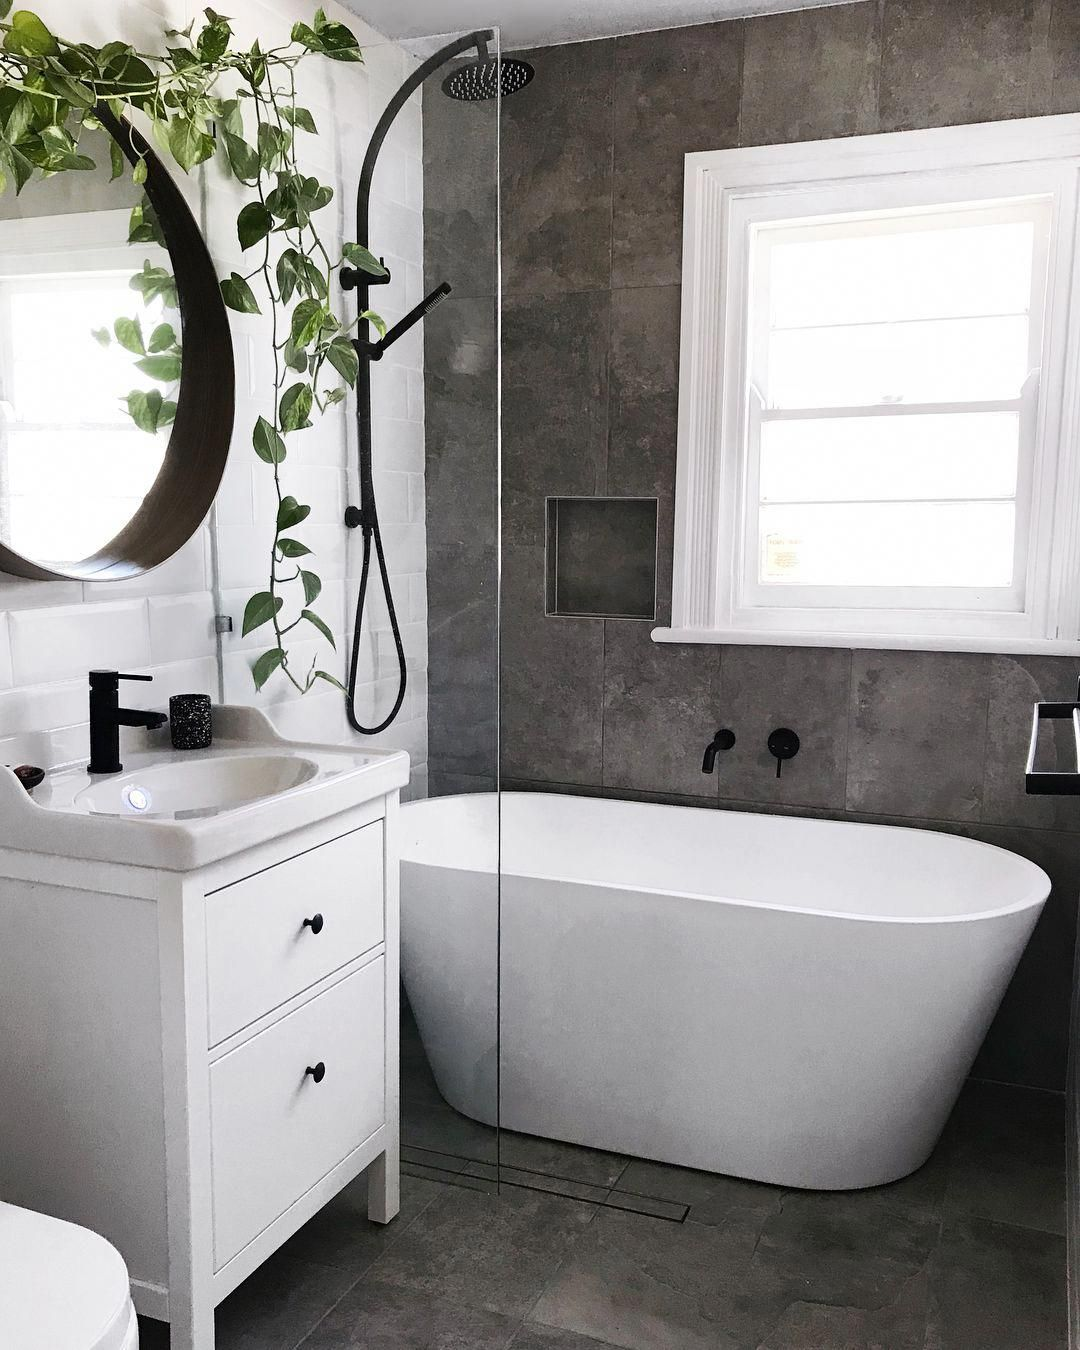 Our Beautiful New Bathroom Before After Smallbathroom In 2019 Badezimmer Bad Und Baden